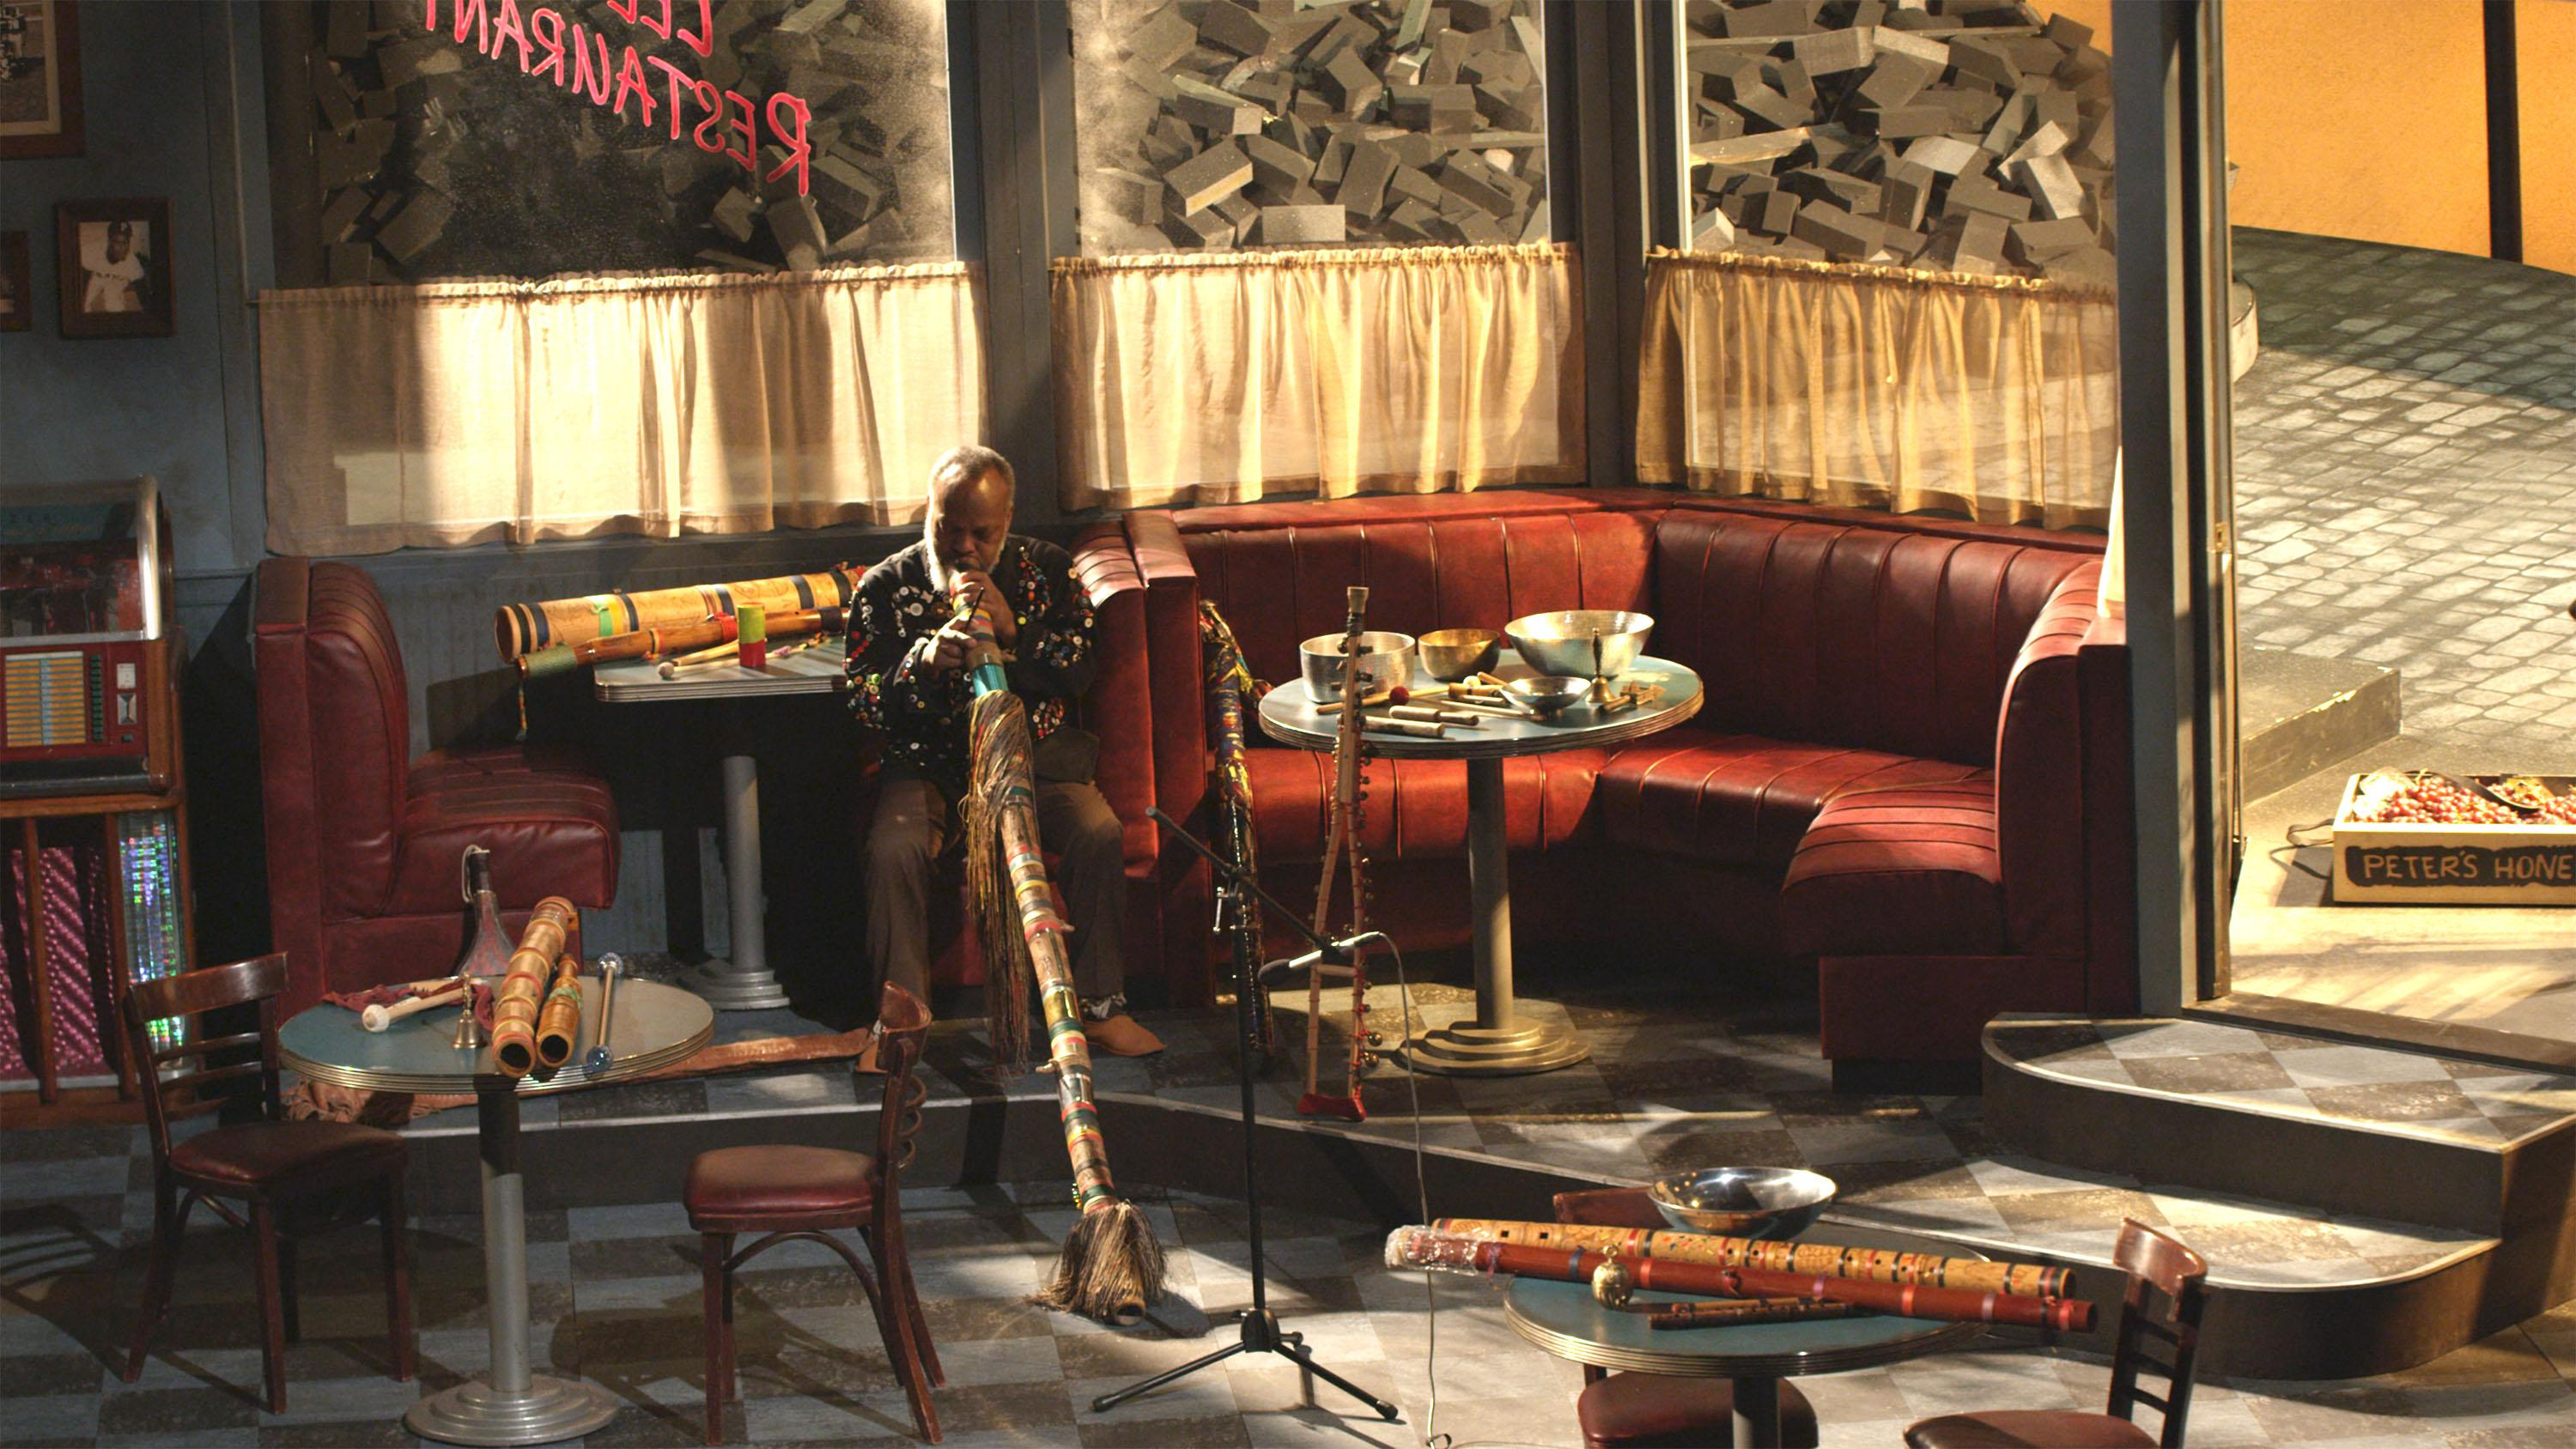 A video still shows a man playing a didgeridoo in a cafe with multiple wind and percussive instruments on tabletops.